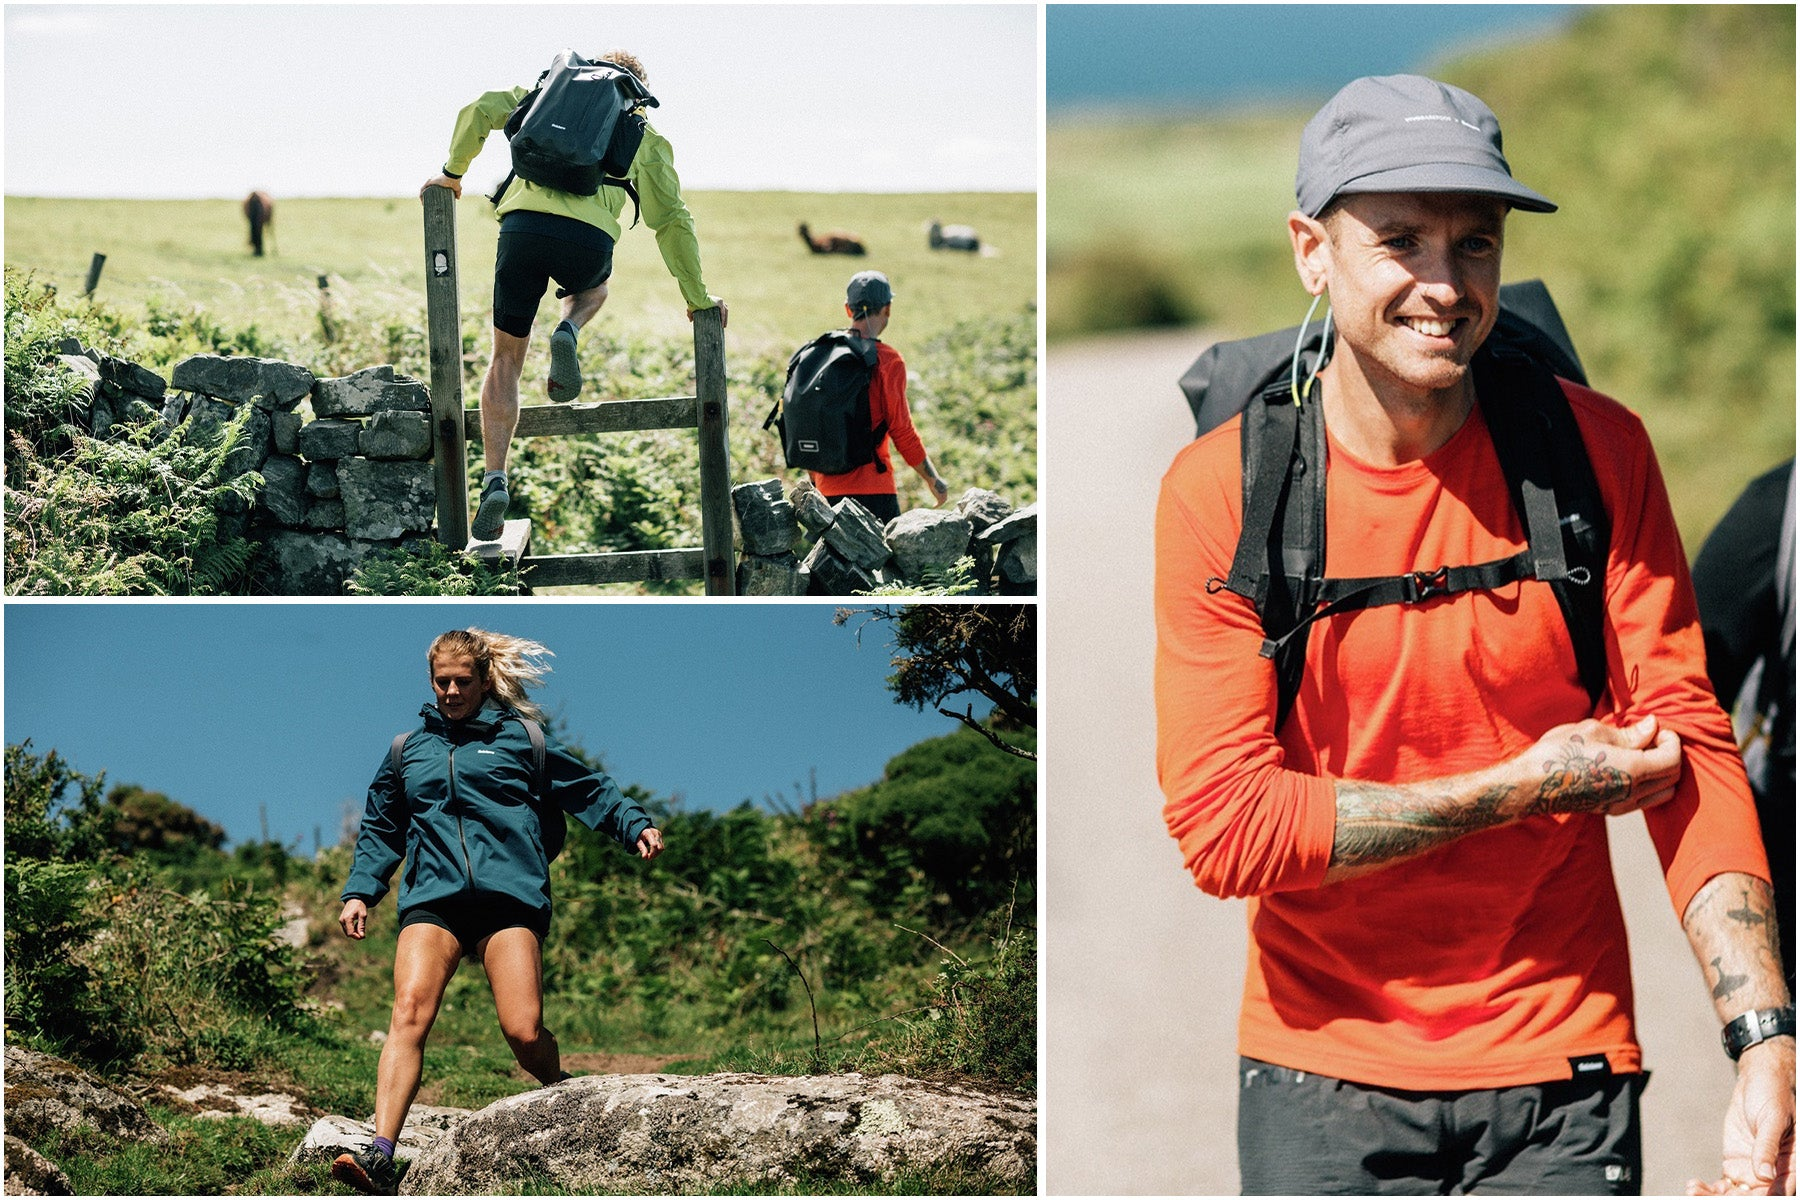 Split image of fastpackers running in Finisterre Merino and Rainbird jacket